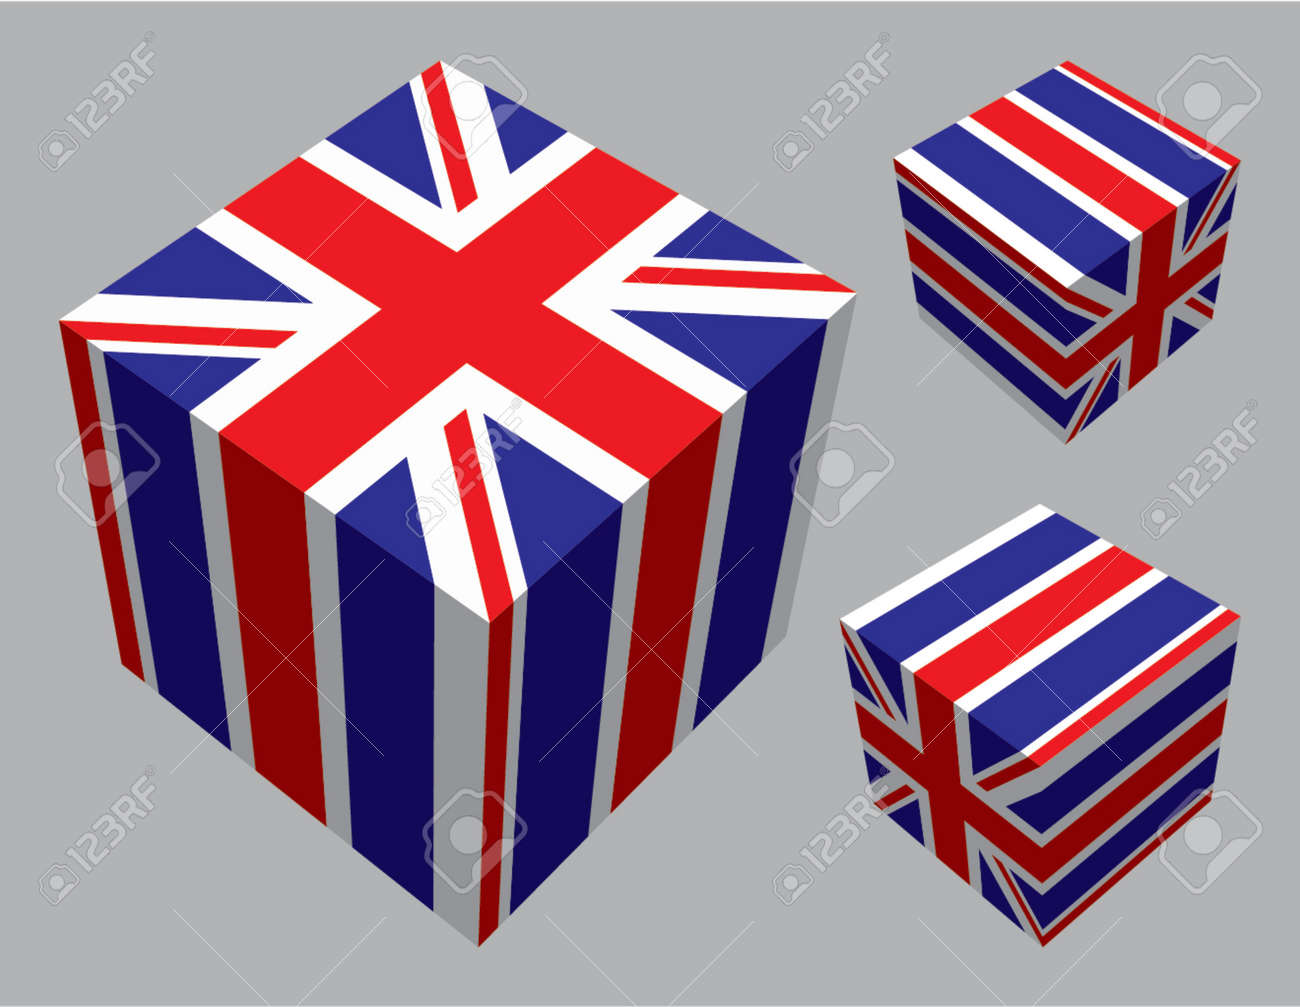 The British flag extruded and mapped onto three cubes. Stock Vector - 707270